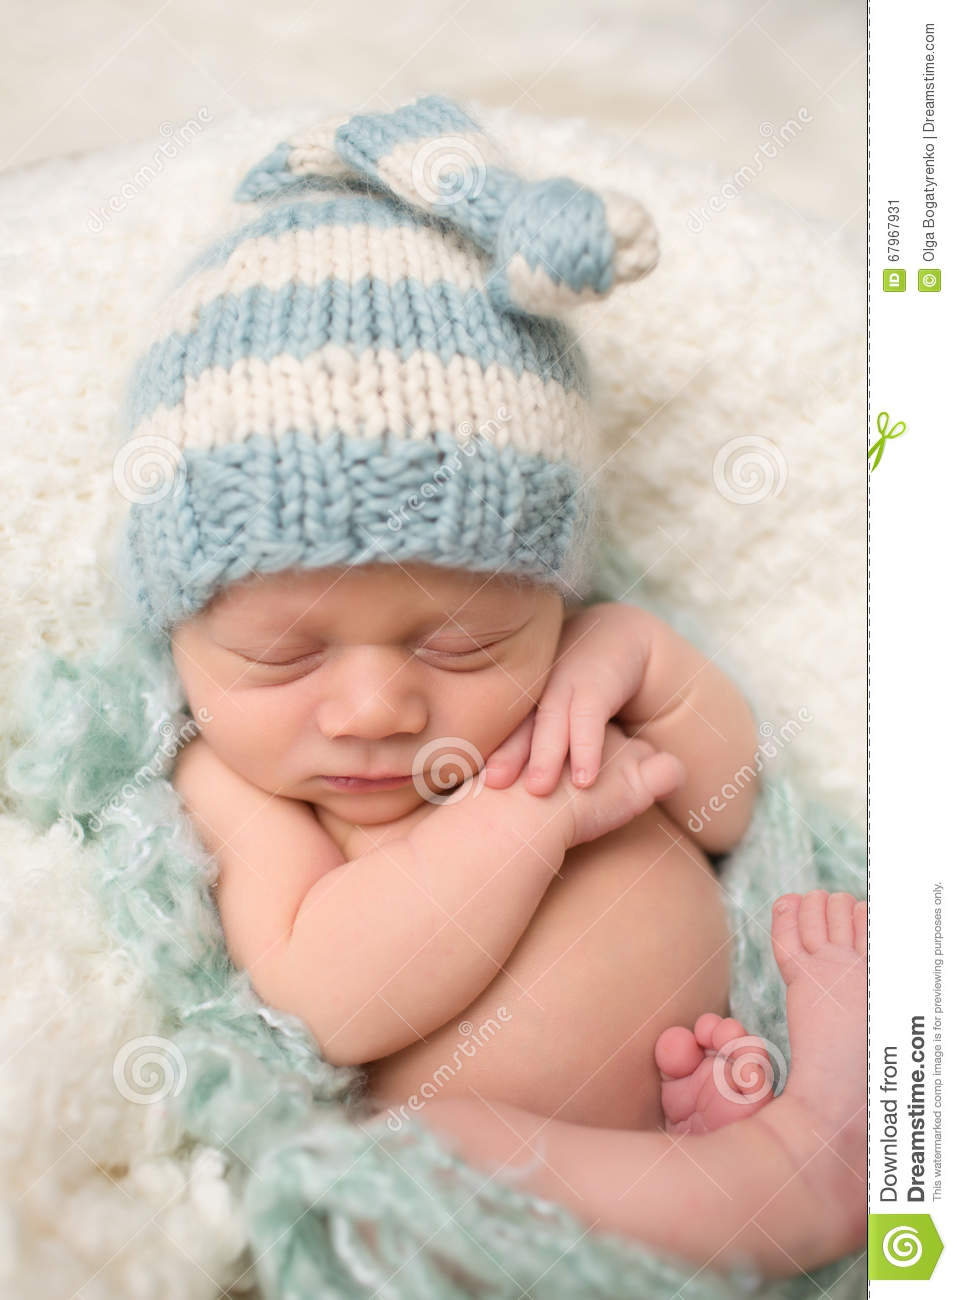 ec97d005a41 Newborn Baby Sleeping In Knit Hat Stock Image - Image of love ...